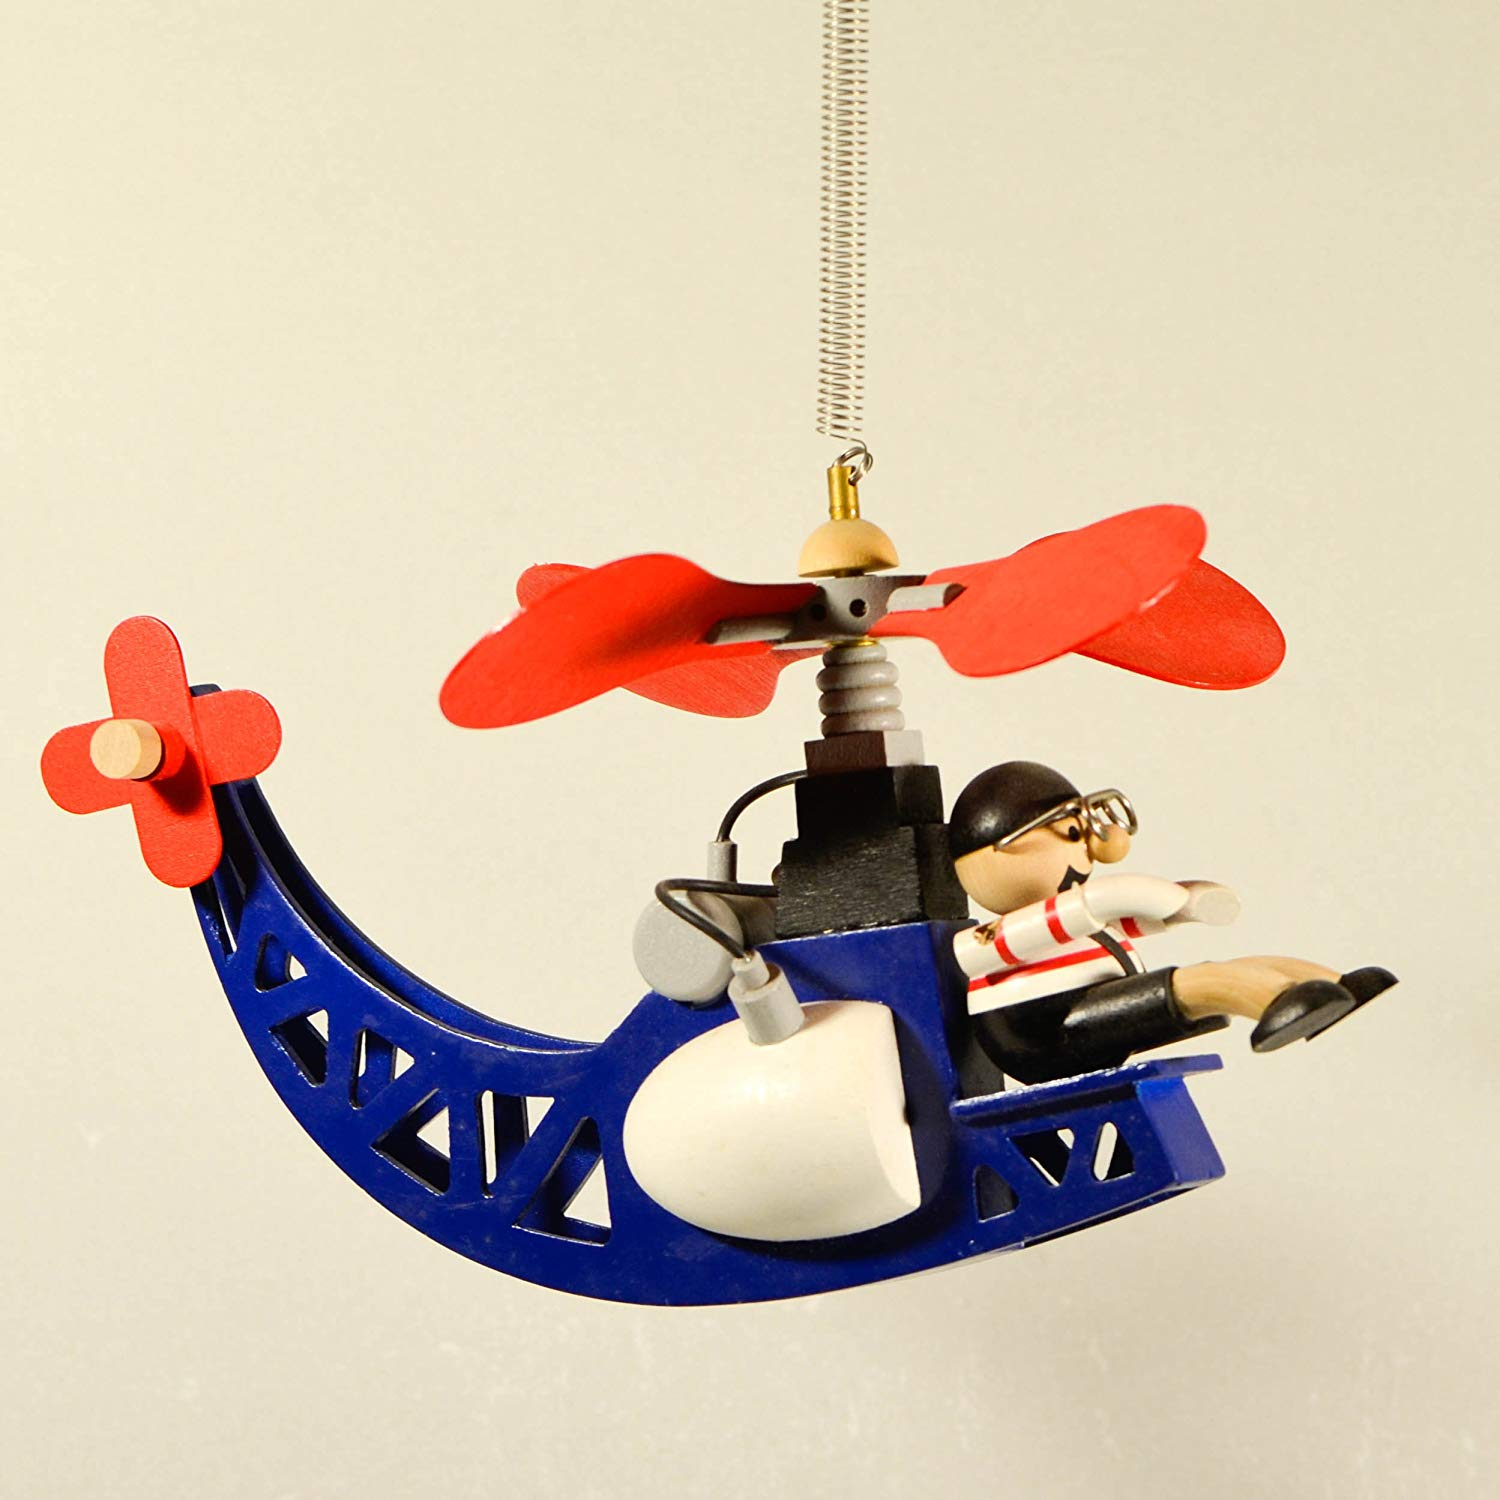 Wooden Hanging Mobile Helicopter with Pilot Man - Nursery Decor - Heli Hanging Ornament